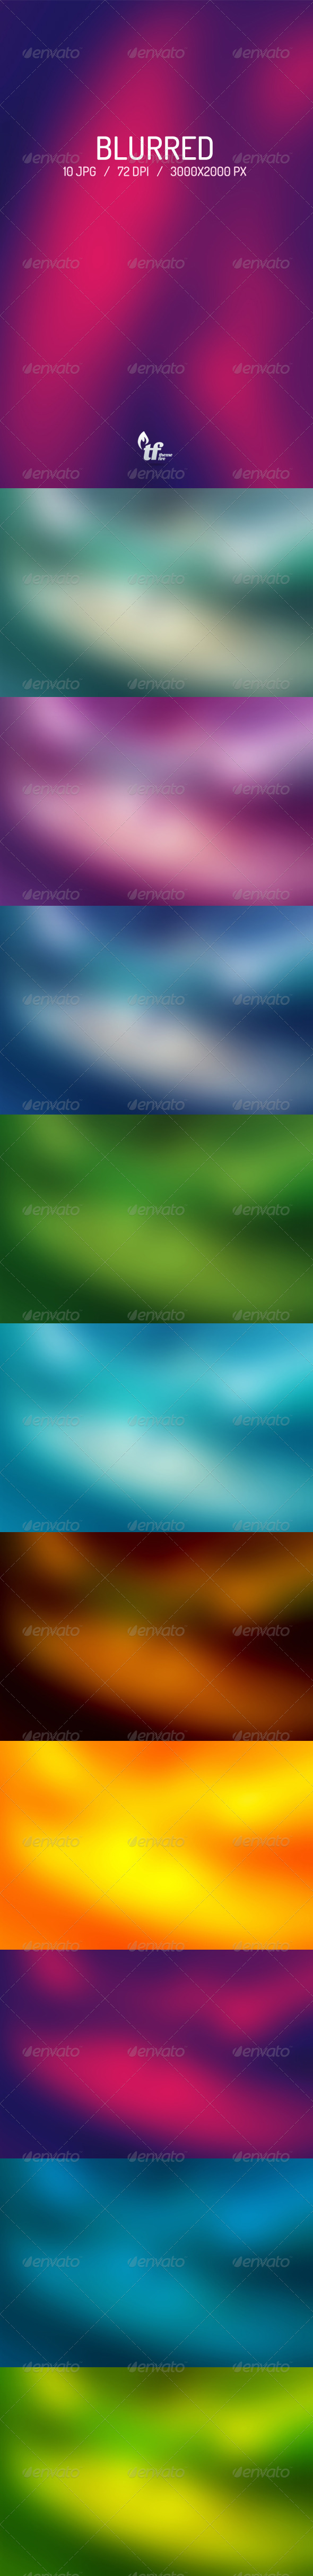 GraphicRiver Blurred Backgrounds 6560407